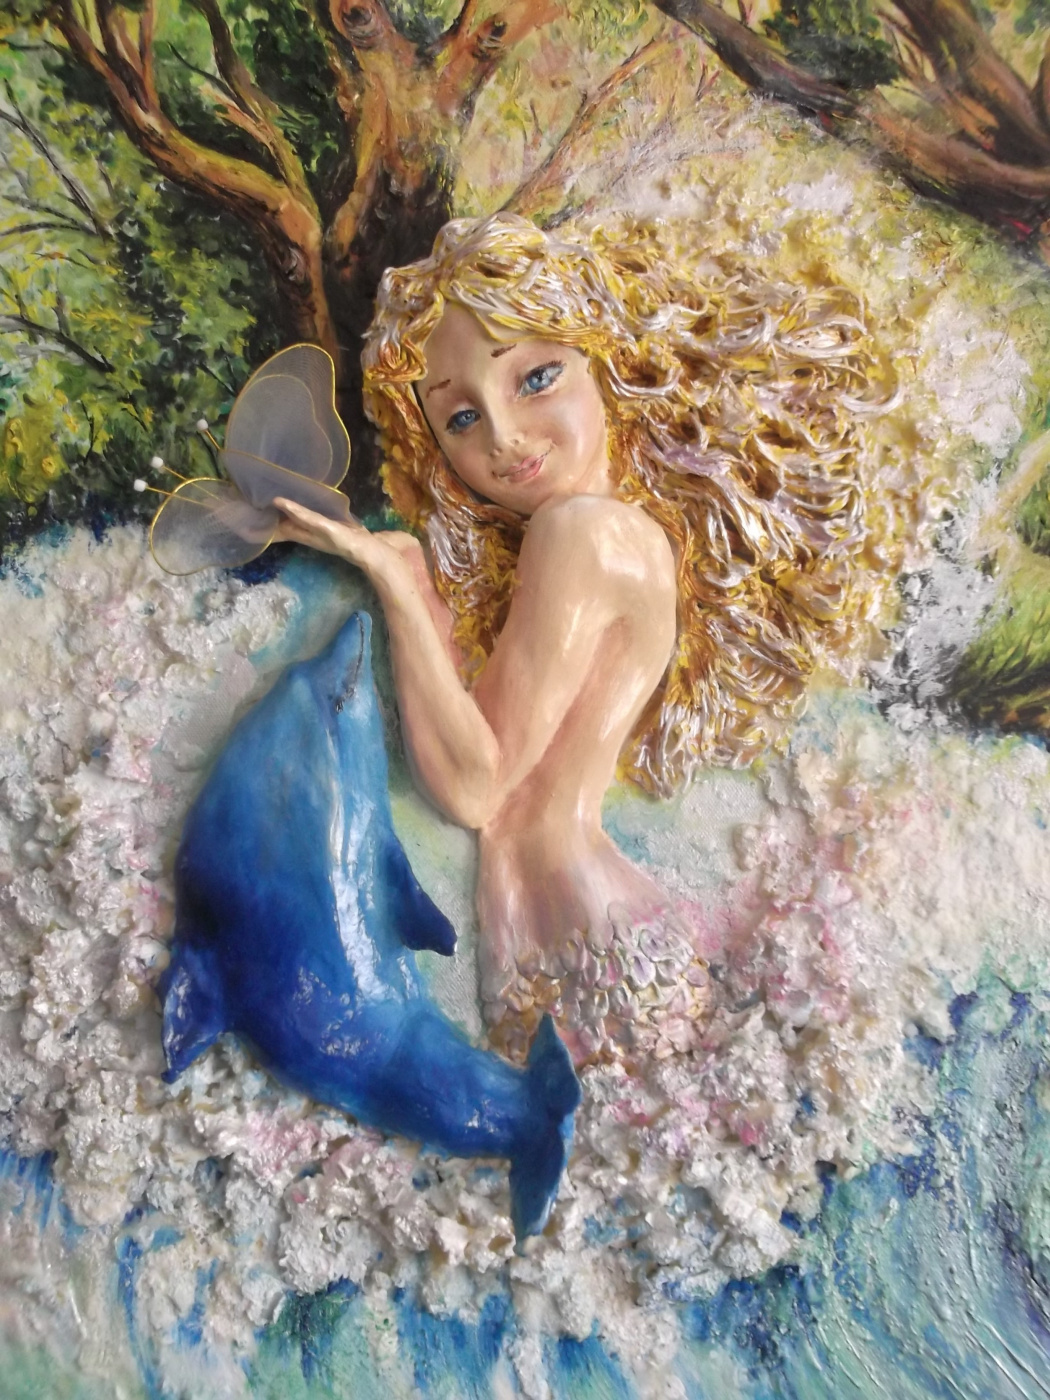 Aurika Kmetiuk. The little mermaid